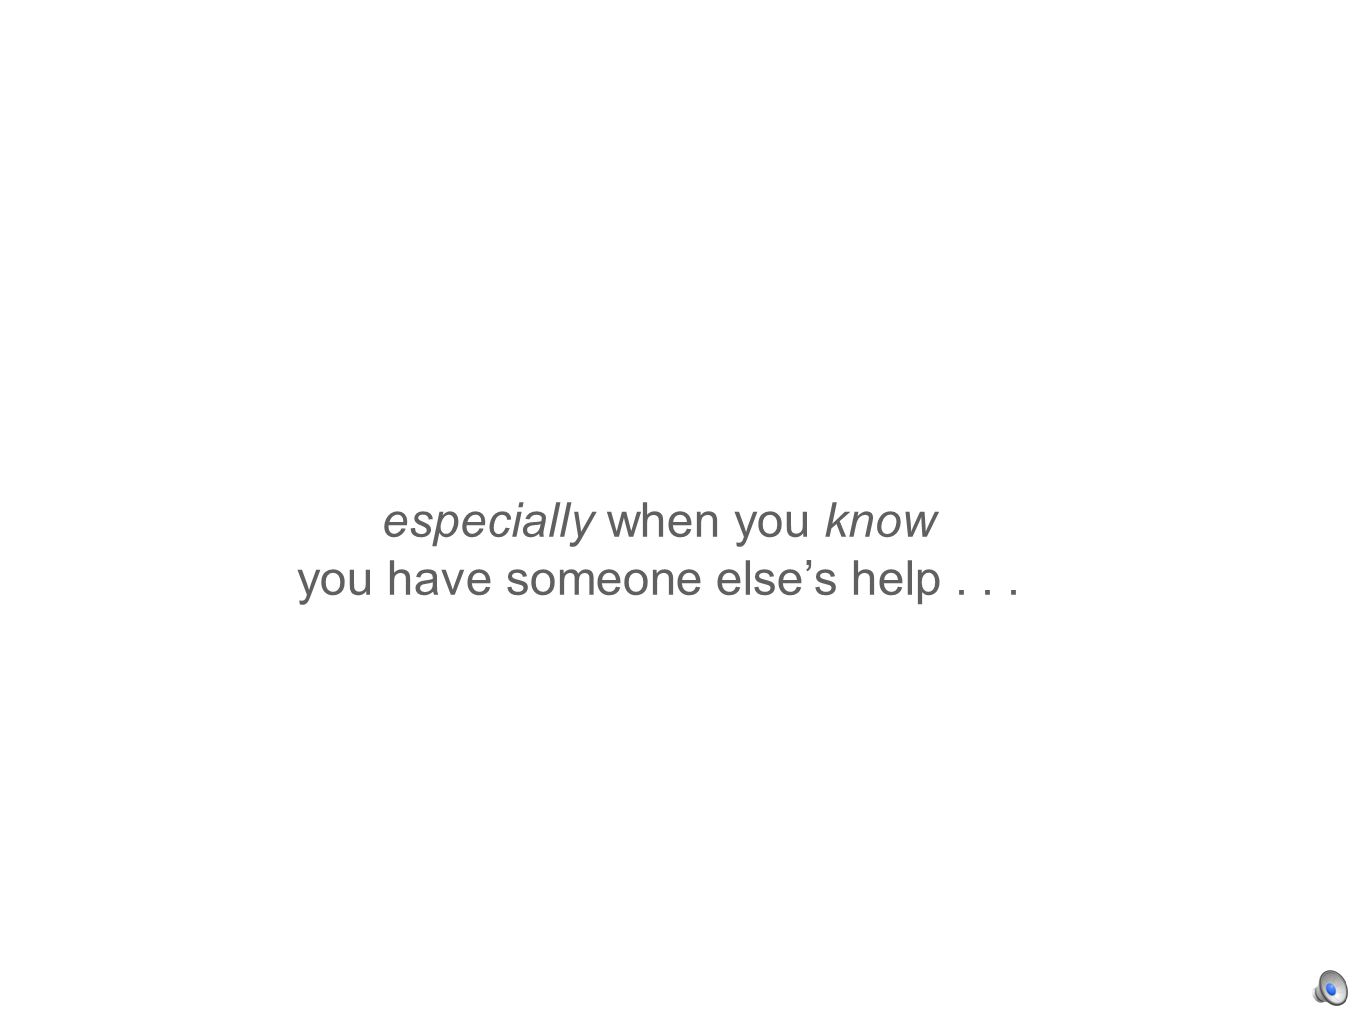 especially when you know you have someone elses help...